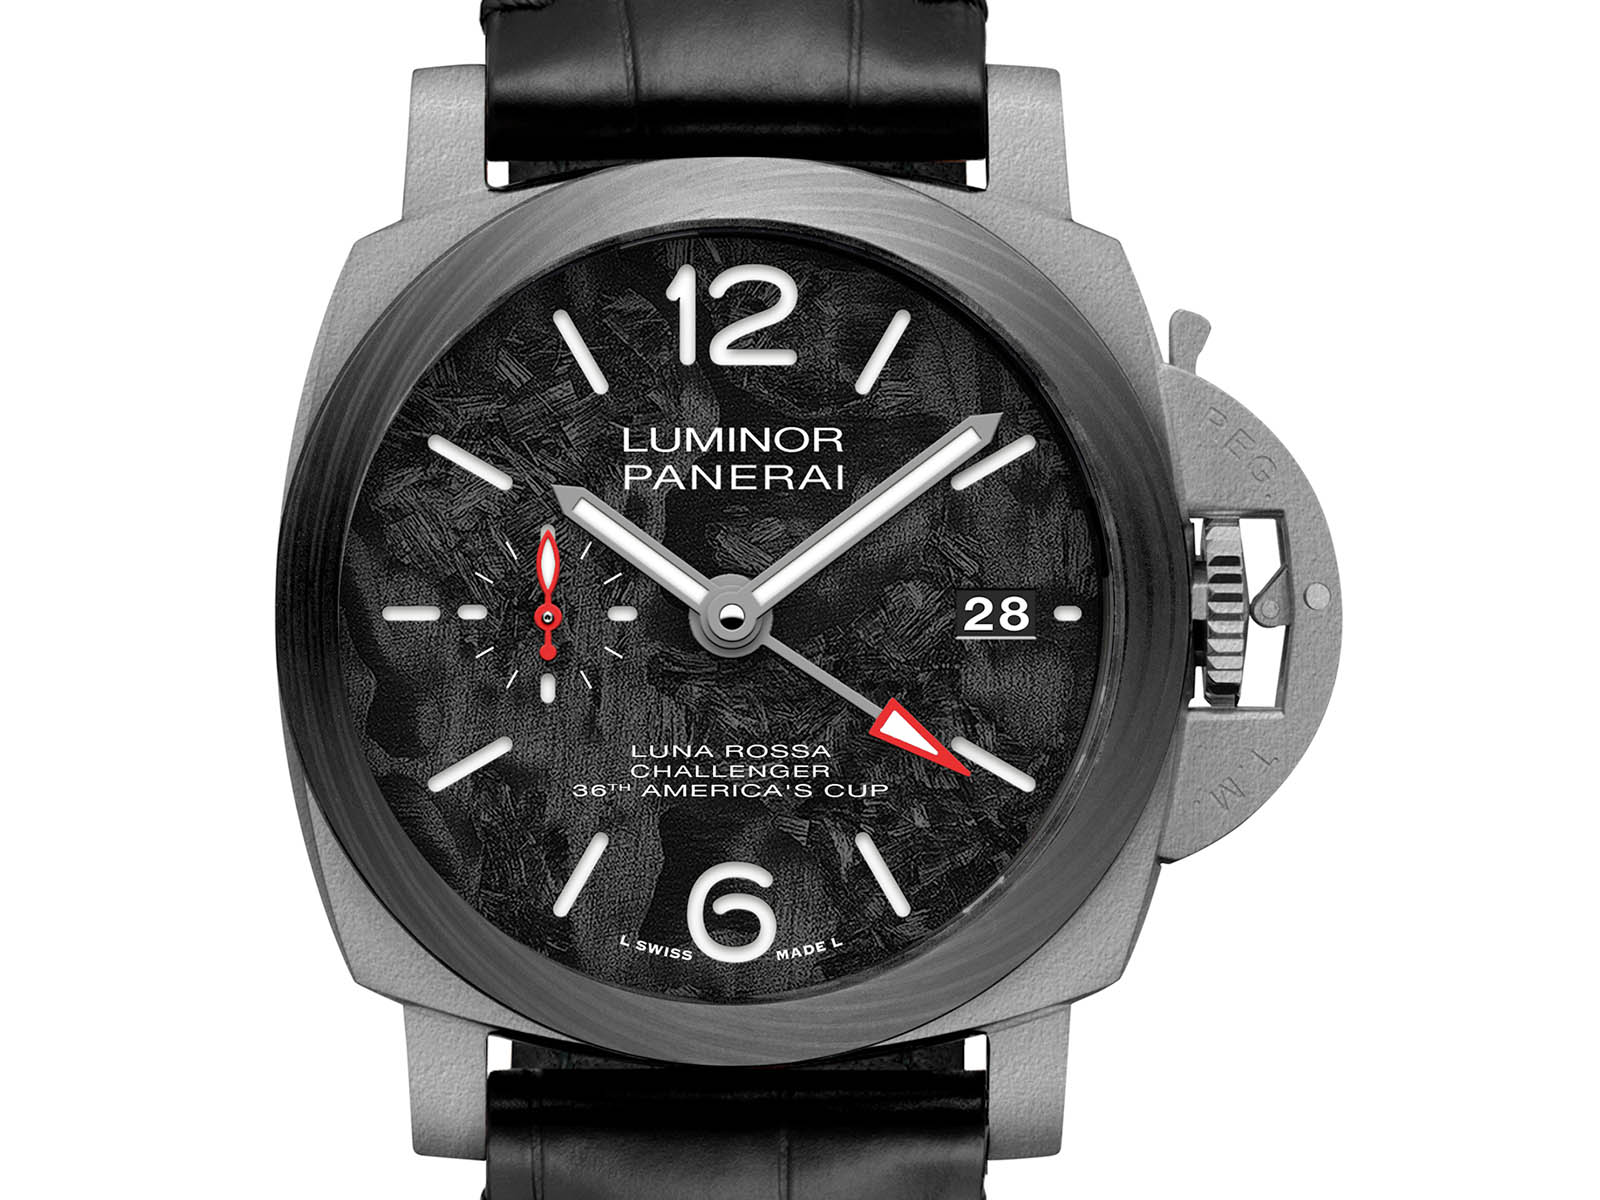 pam01096-panerai-luminor-luna-rossa-gmt-42mm-6.jpg